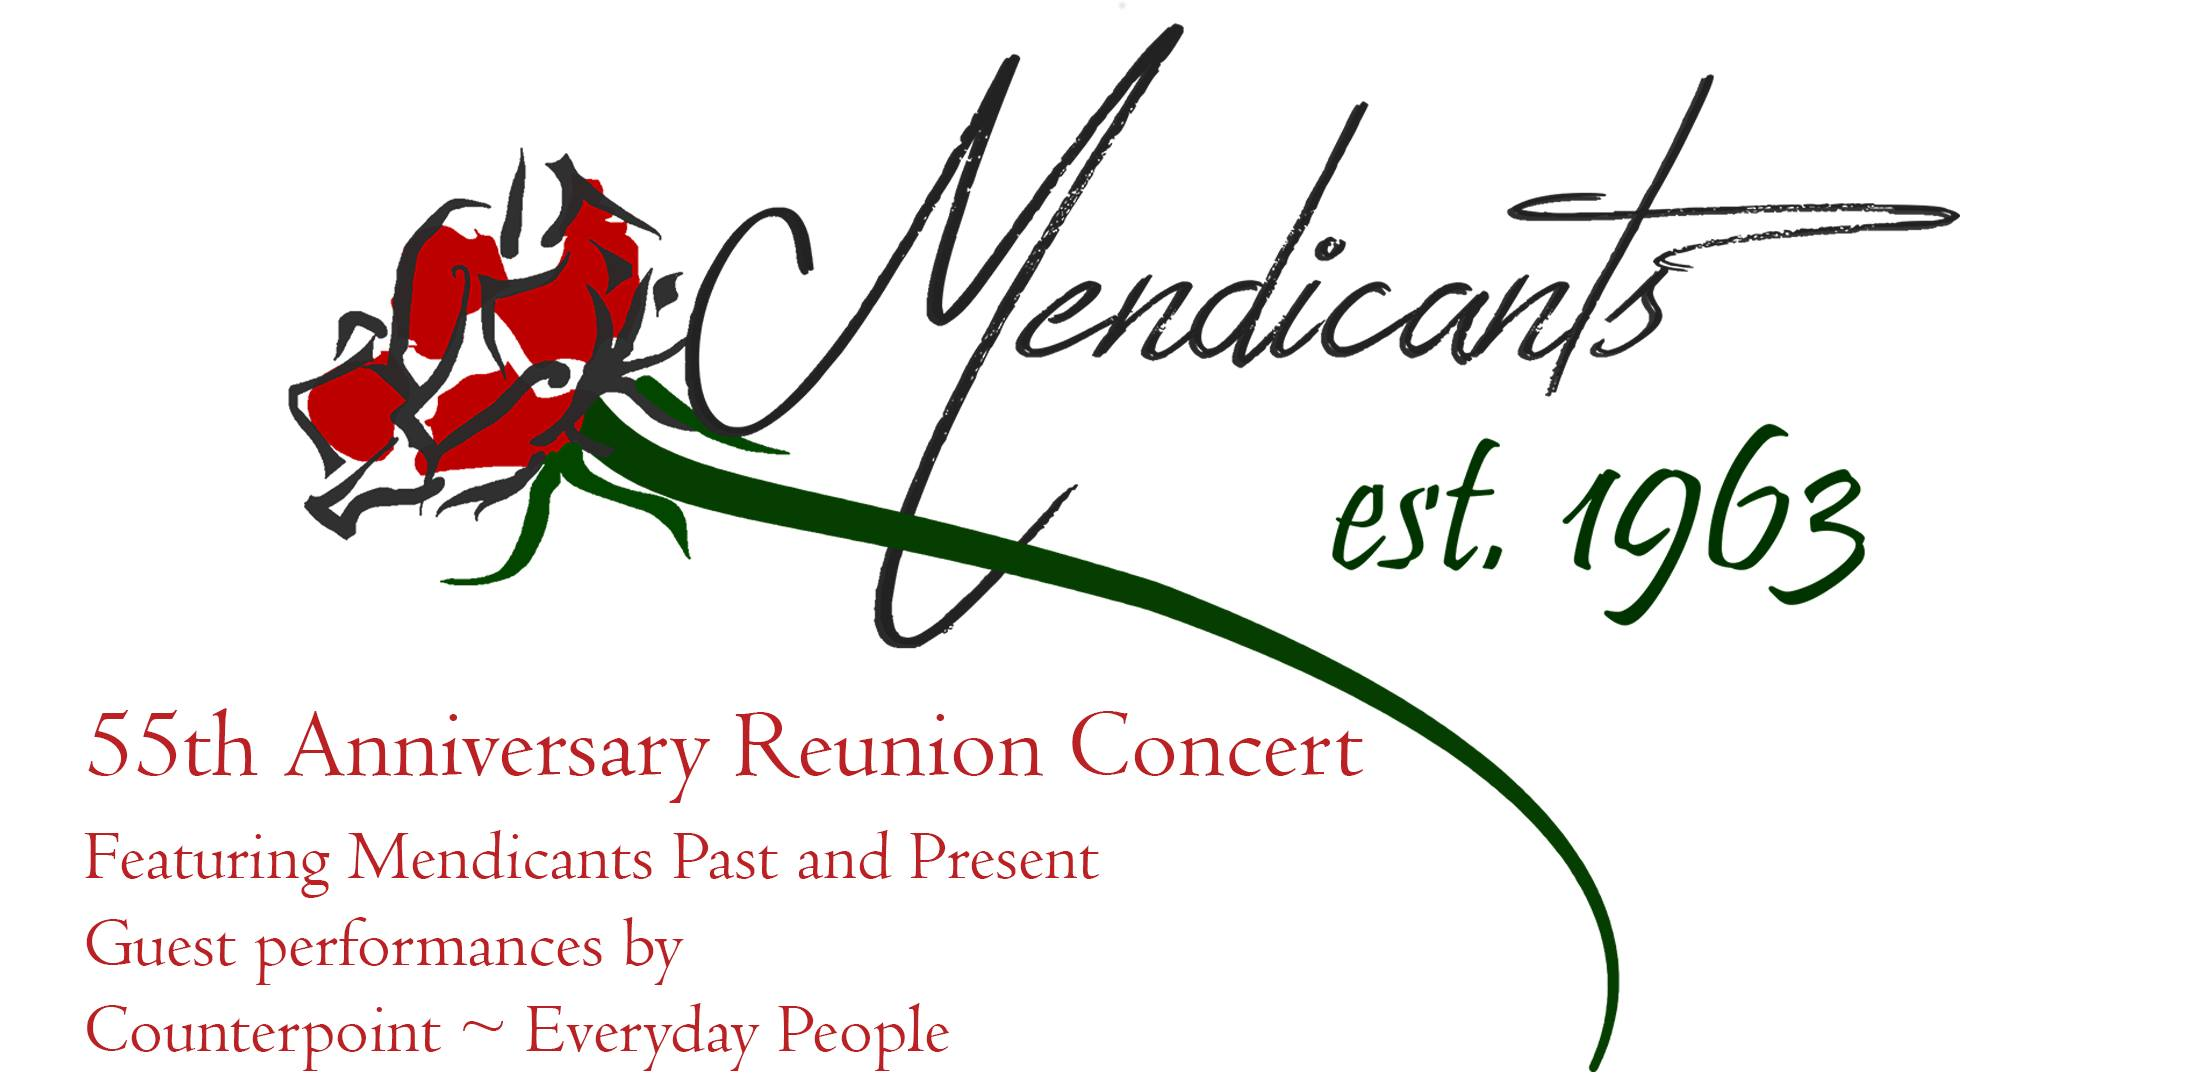 Mendicants 55th Anniversary